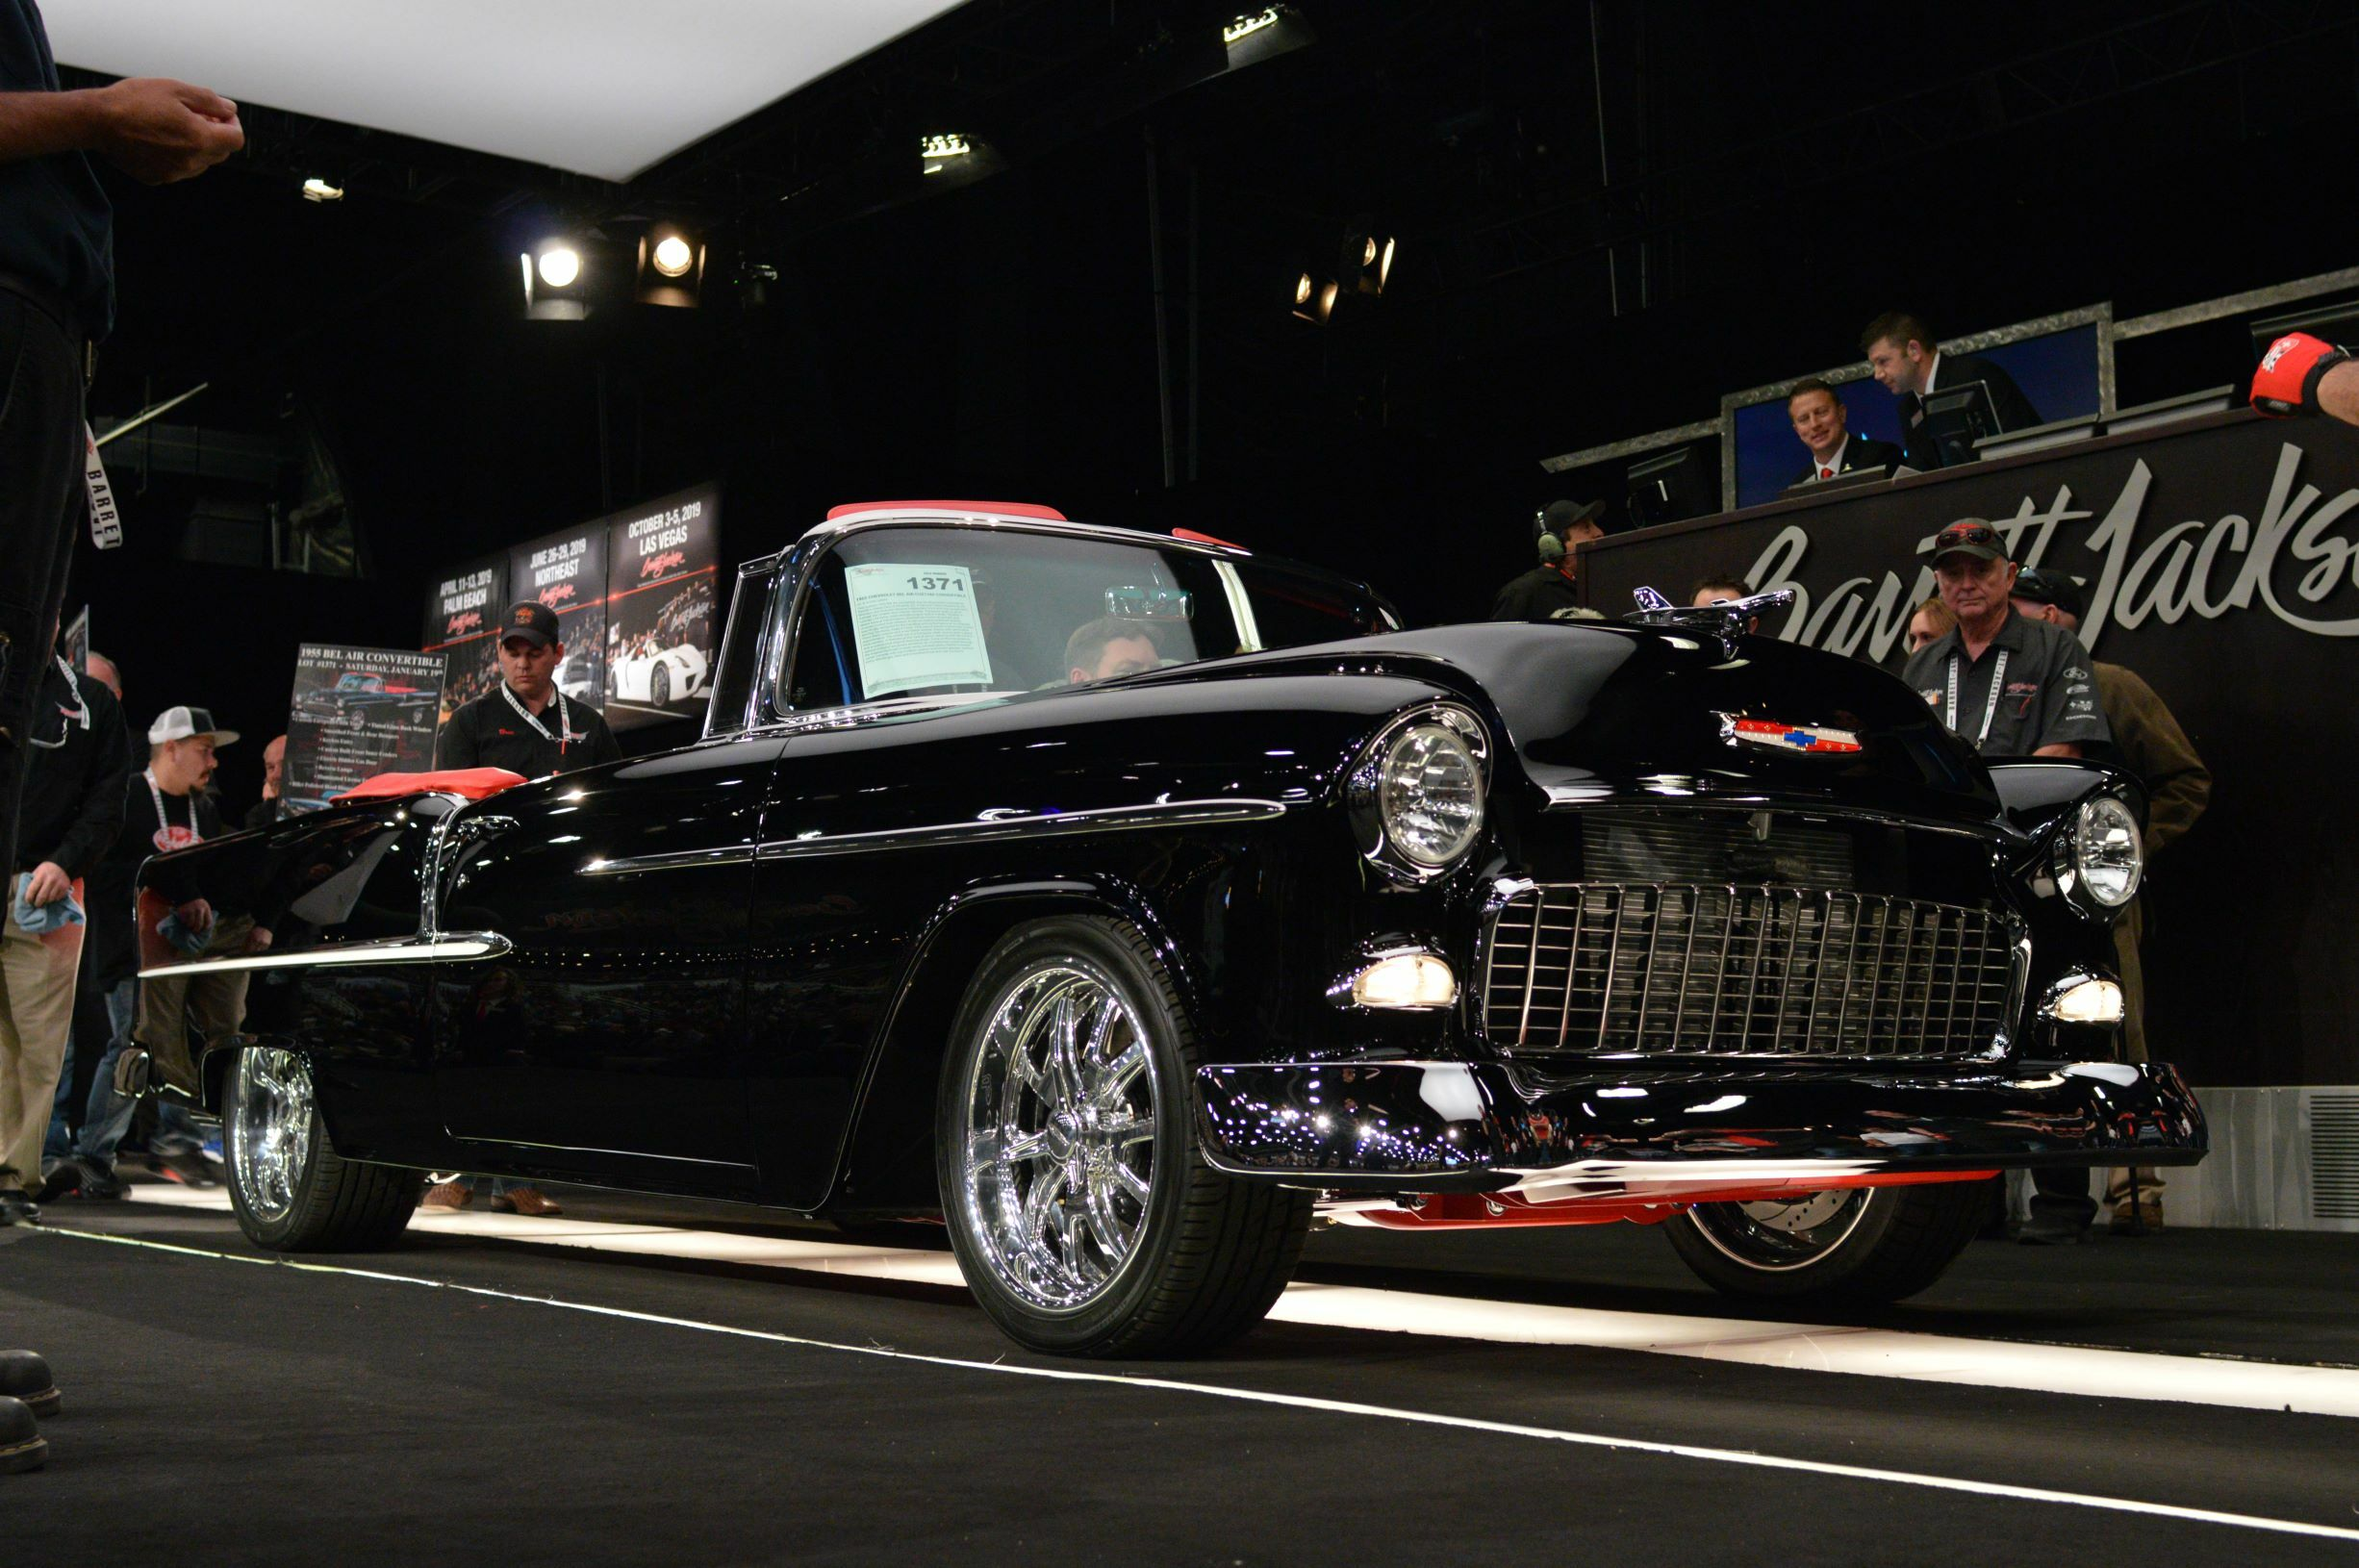 a 1955 Chevrolet Bel Air Custom Convertible (Lot 1371) sold at Scottsdale 2019 for $363,000